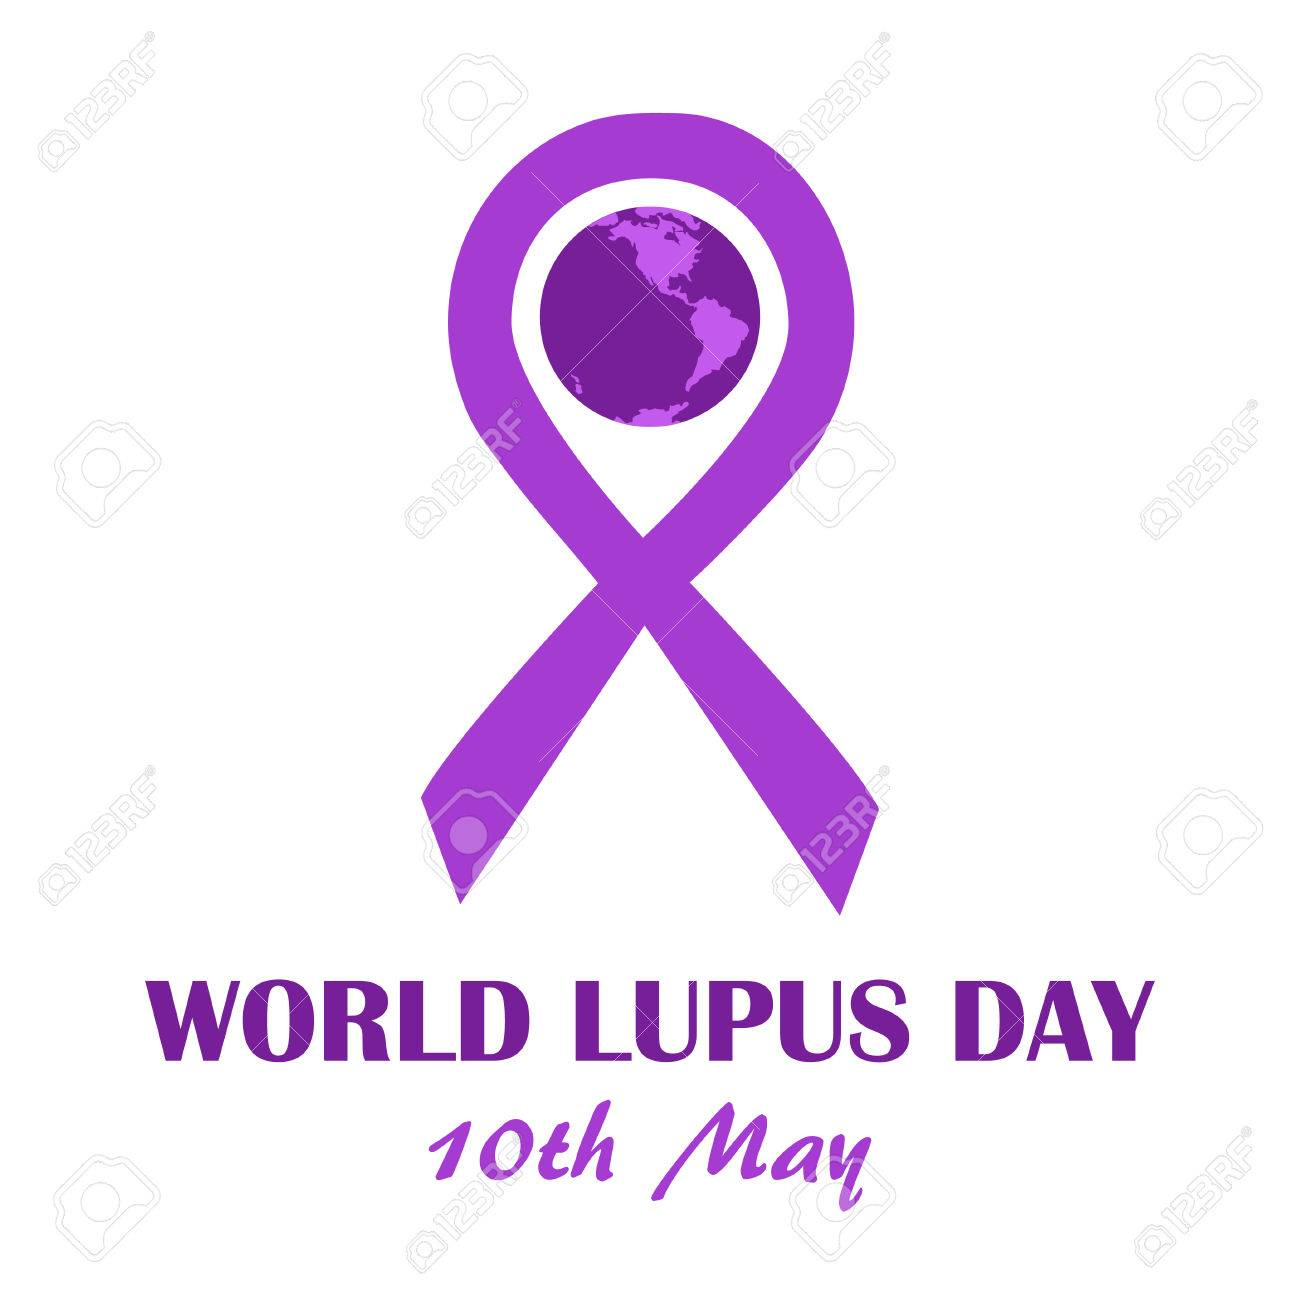 World lupus day template purple ribbon as disease awareness world lupus day template purple ribbon as disease awareness sign with earth globe illustration biocorpaavc Image collections